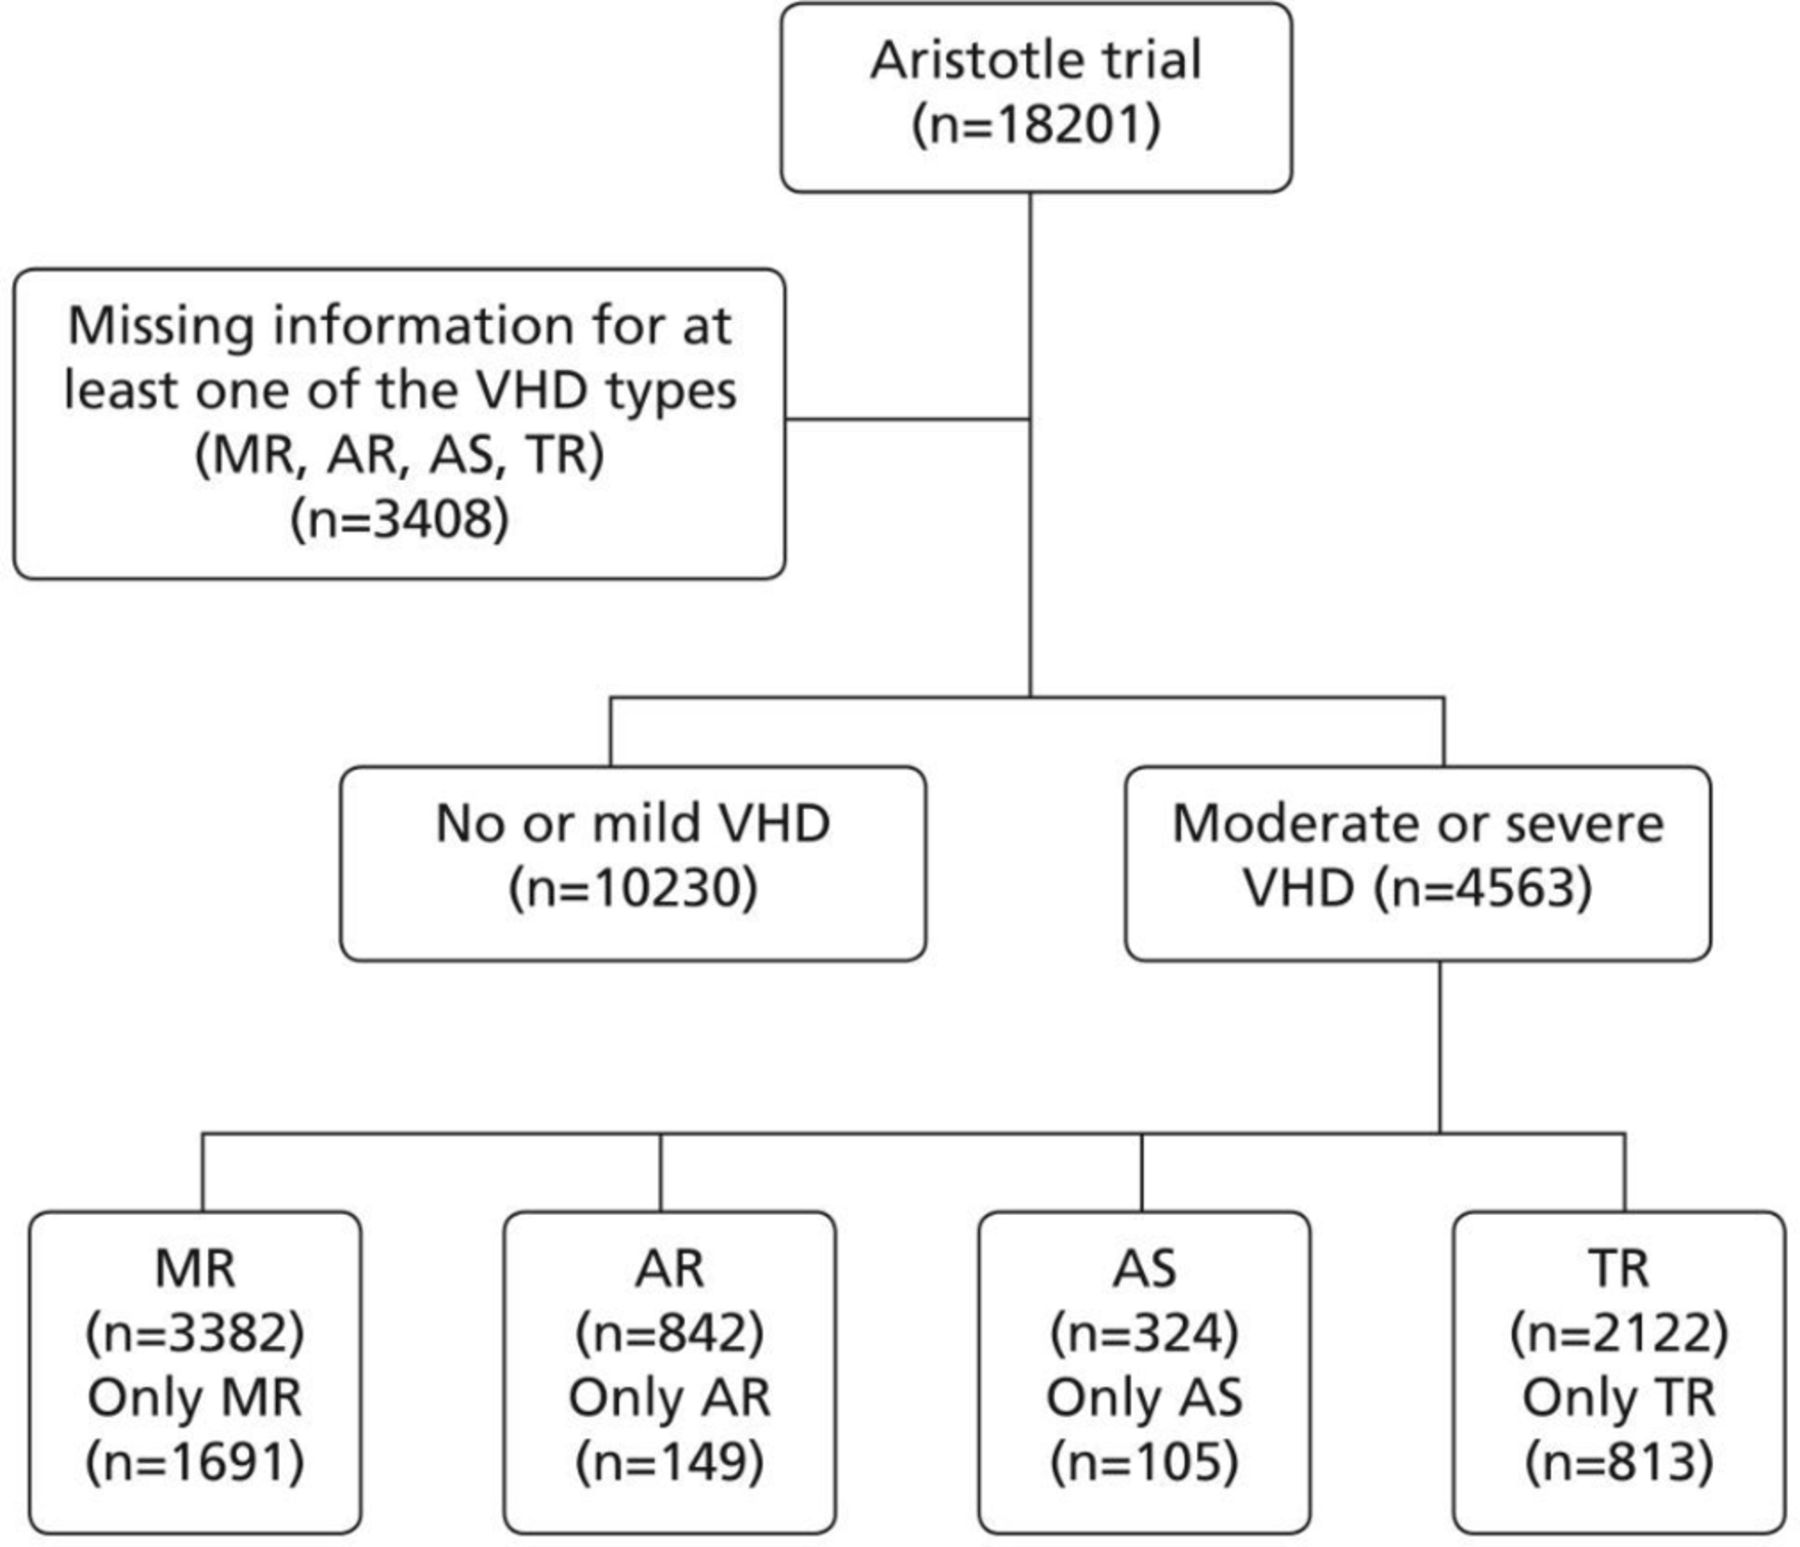 Outcomes In Anticoagulated Patients With Atrial Fibrillation And With Mitral Or Aortic Valve